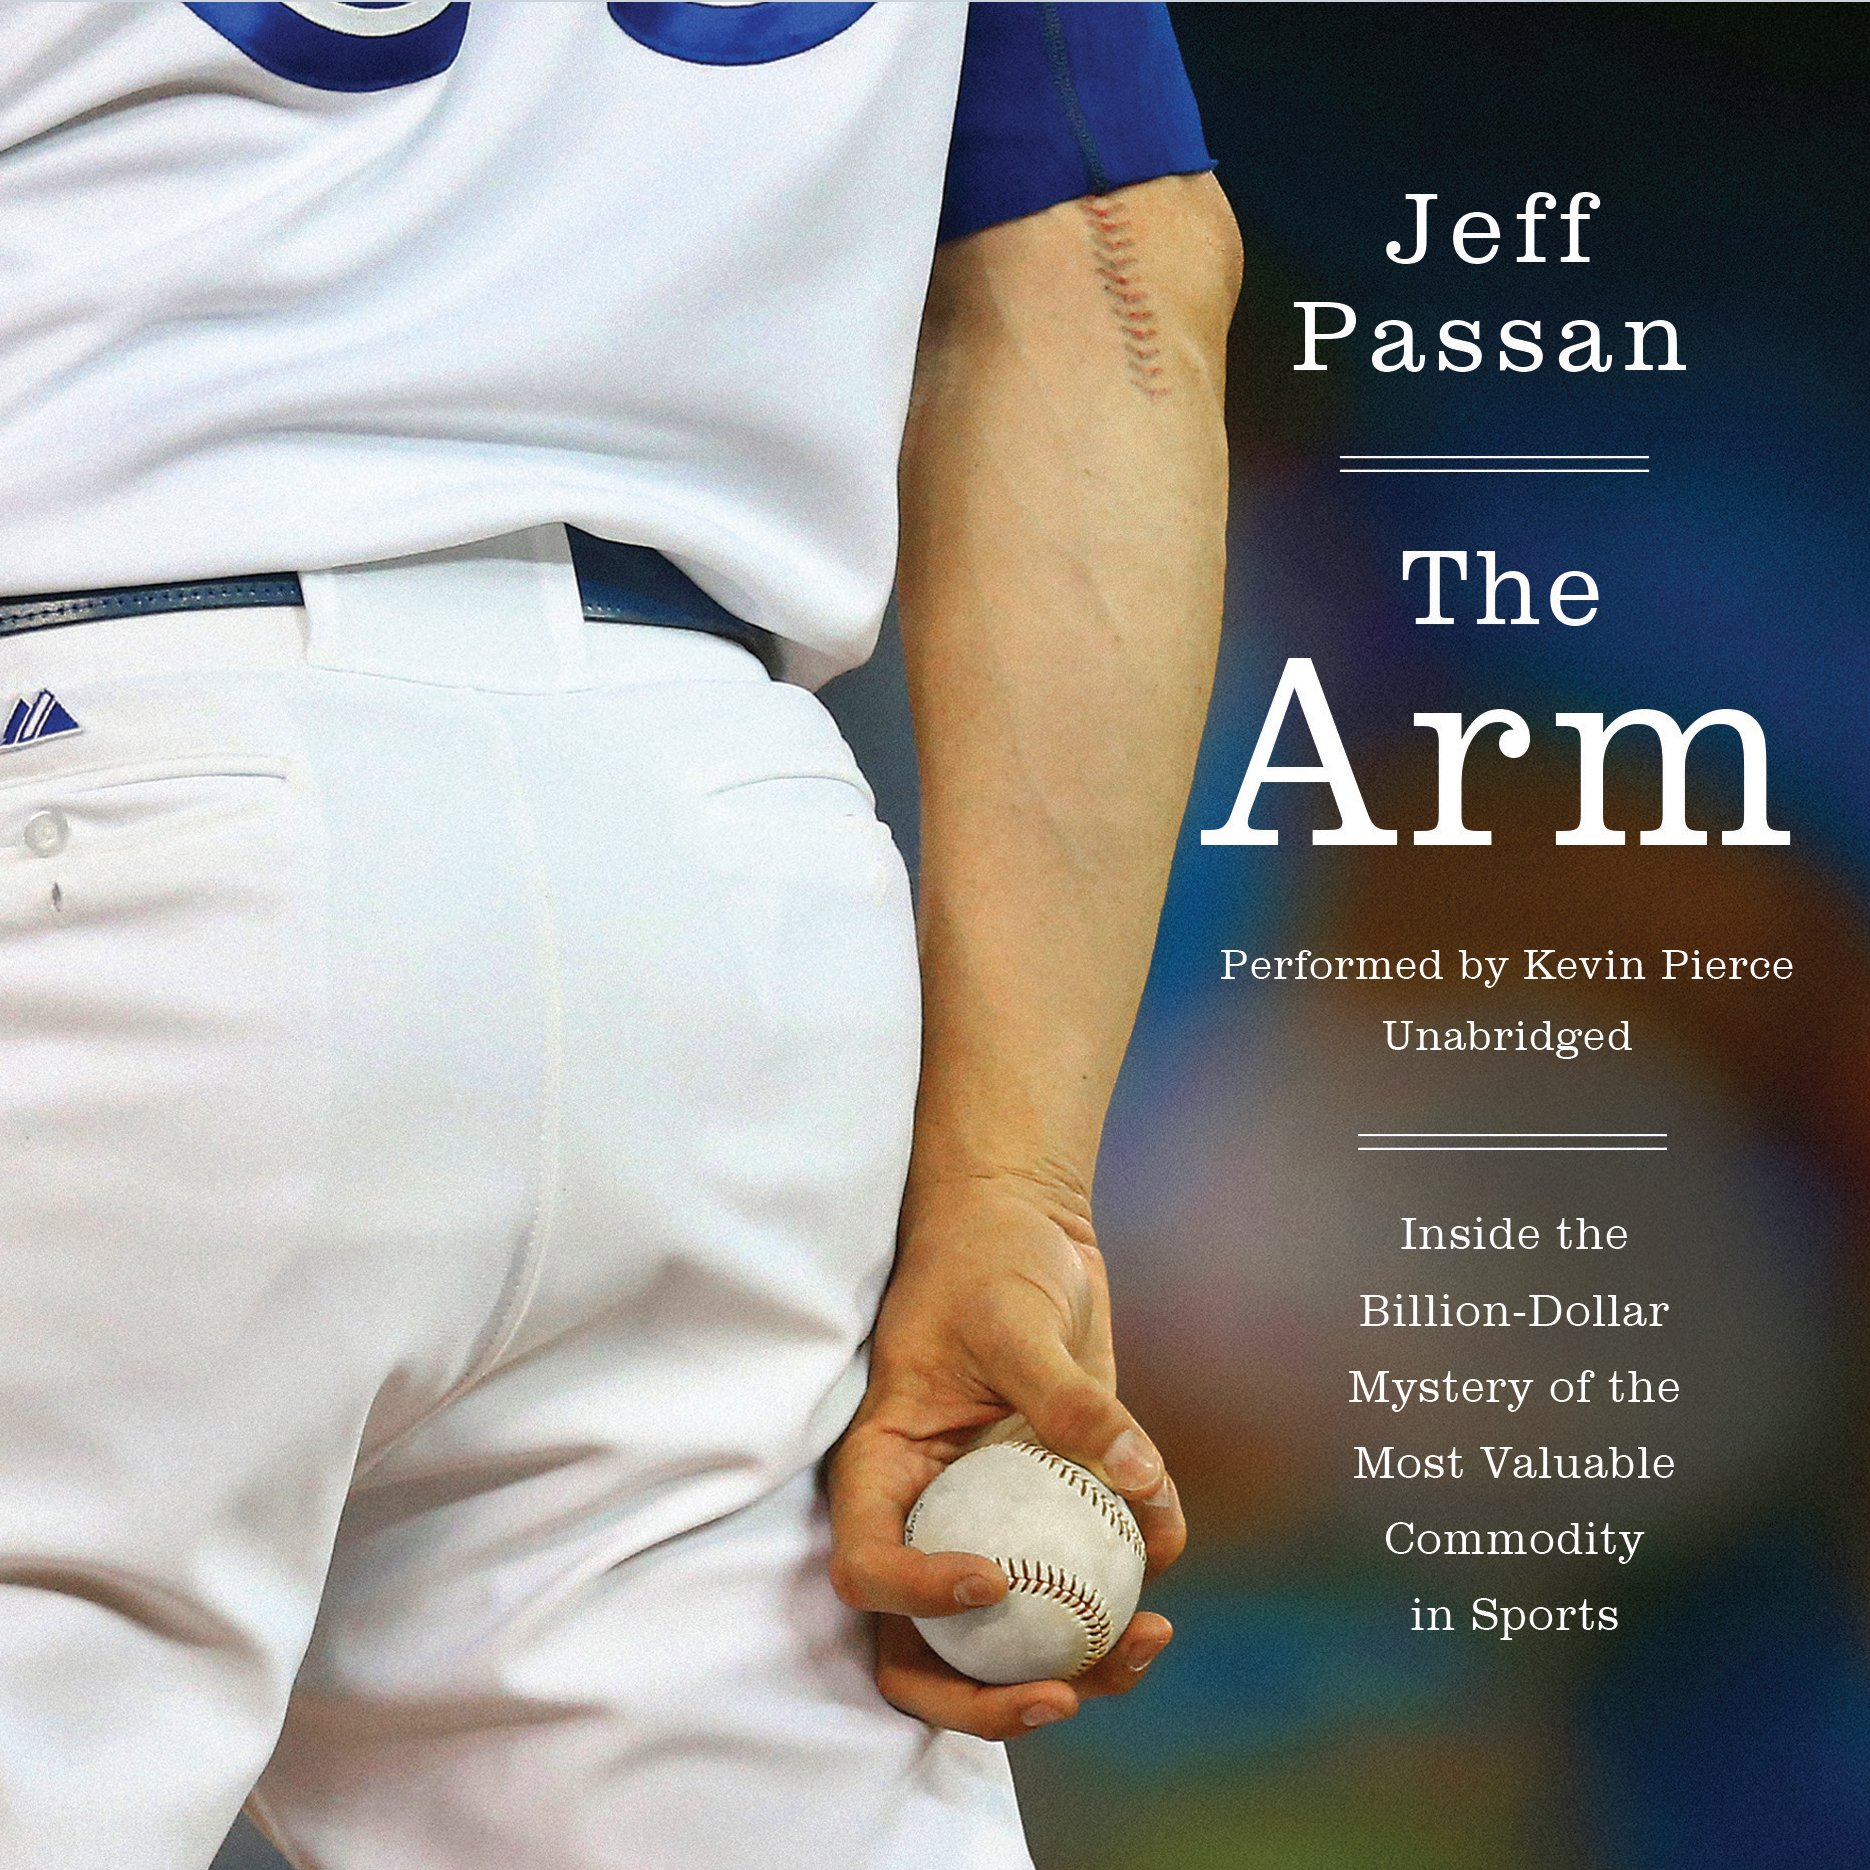 The Arm: Inside the Billion-Dollar Mystery of the Most Valuable Commodity in Sports by HarperCollins Publishing and Blackstone Audio